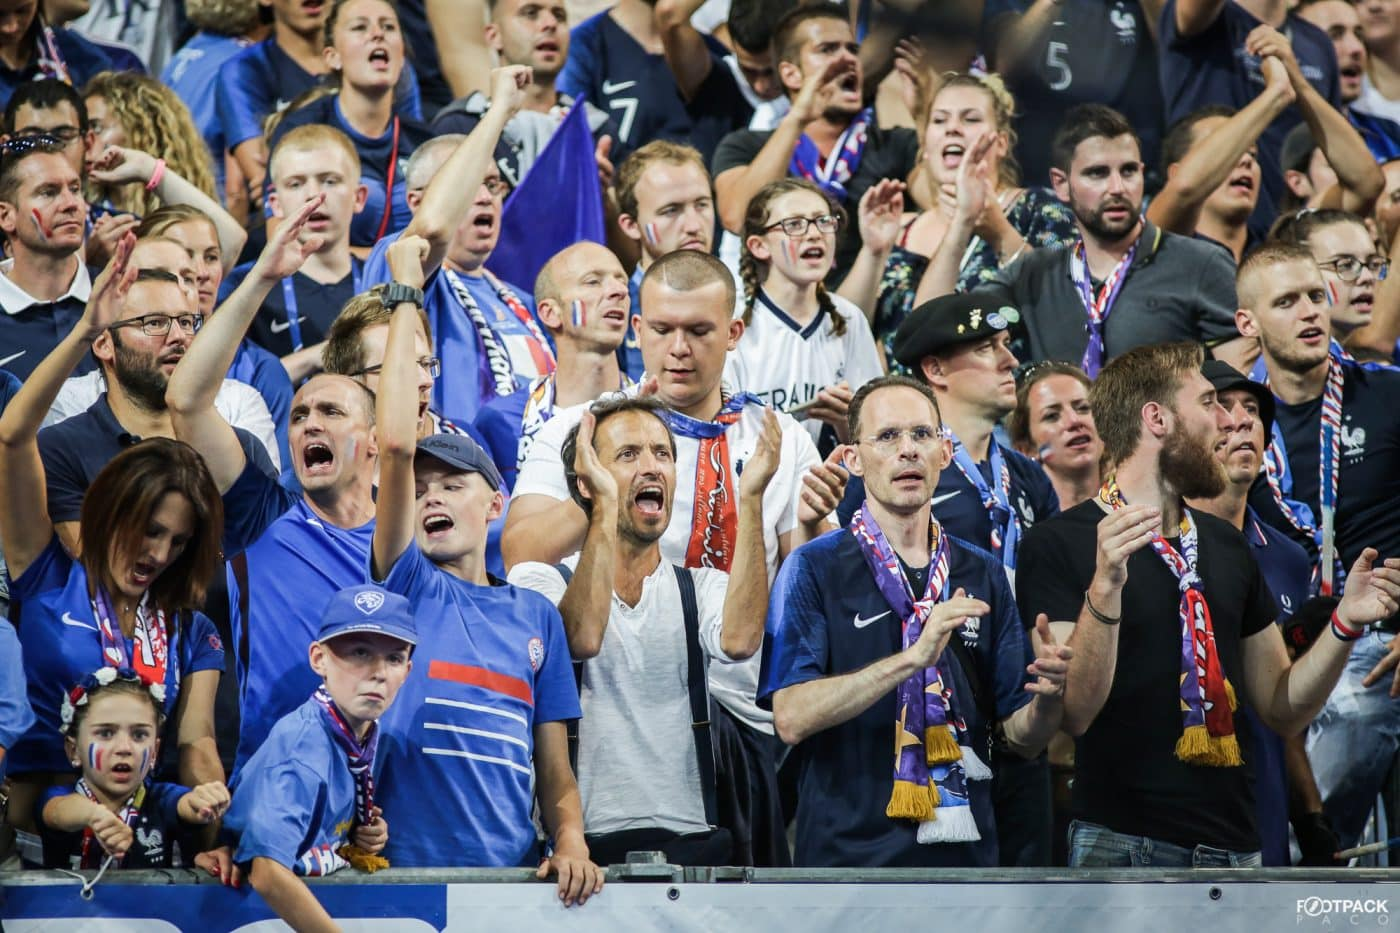 au-stade-france-pays-bas-supporters-4